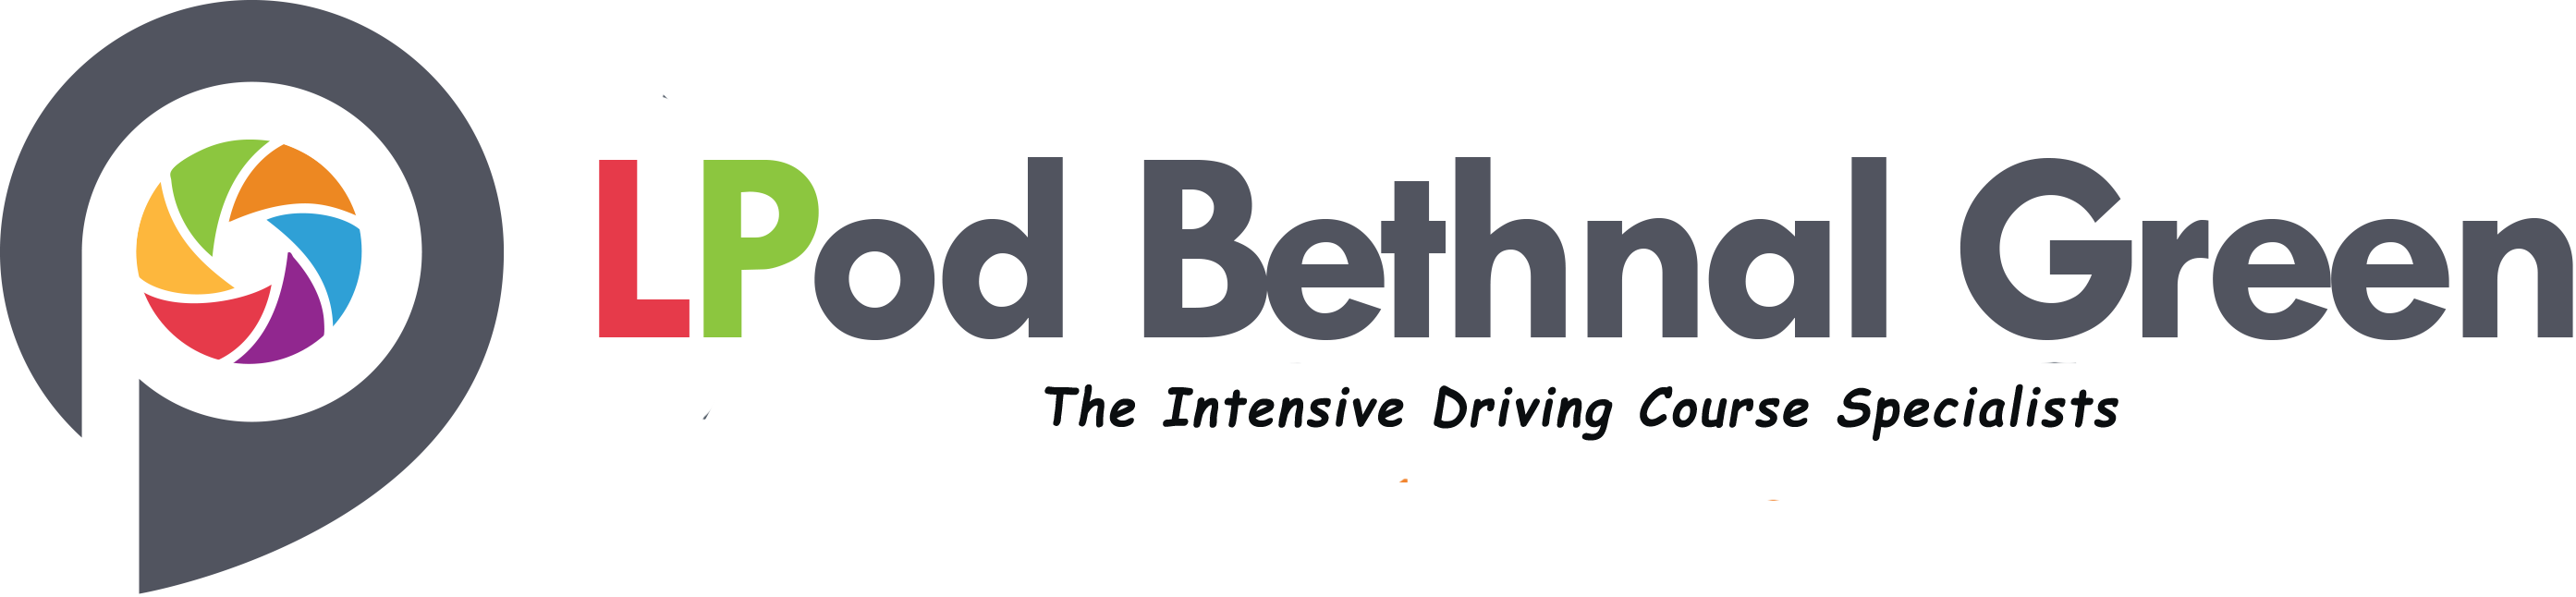 intensive driving courses bethnal green, intensive driving lessons bethnal green, intensive driving school bethnal green, fast pass driving lessons bethnal green, one week driving bethnal green, driving lessons bethnal green, driving instructor bethnal green